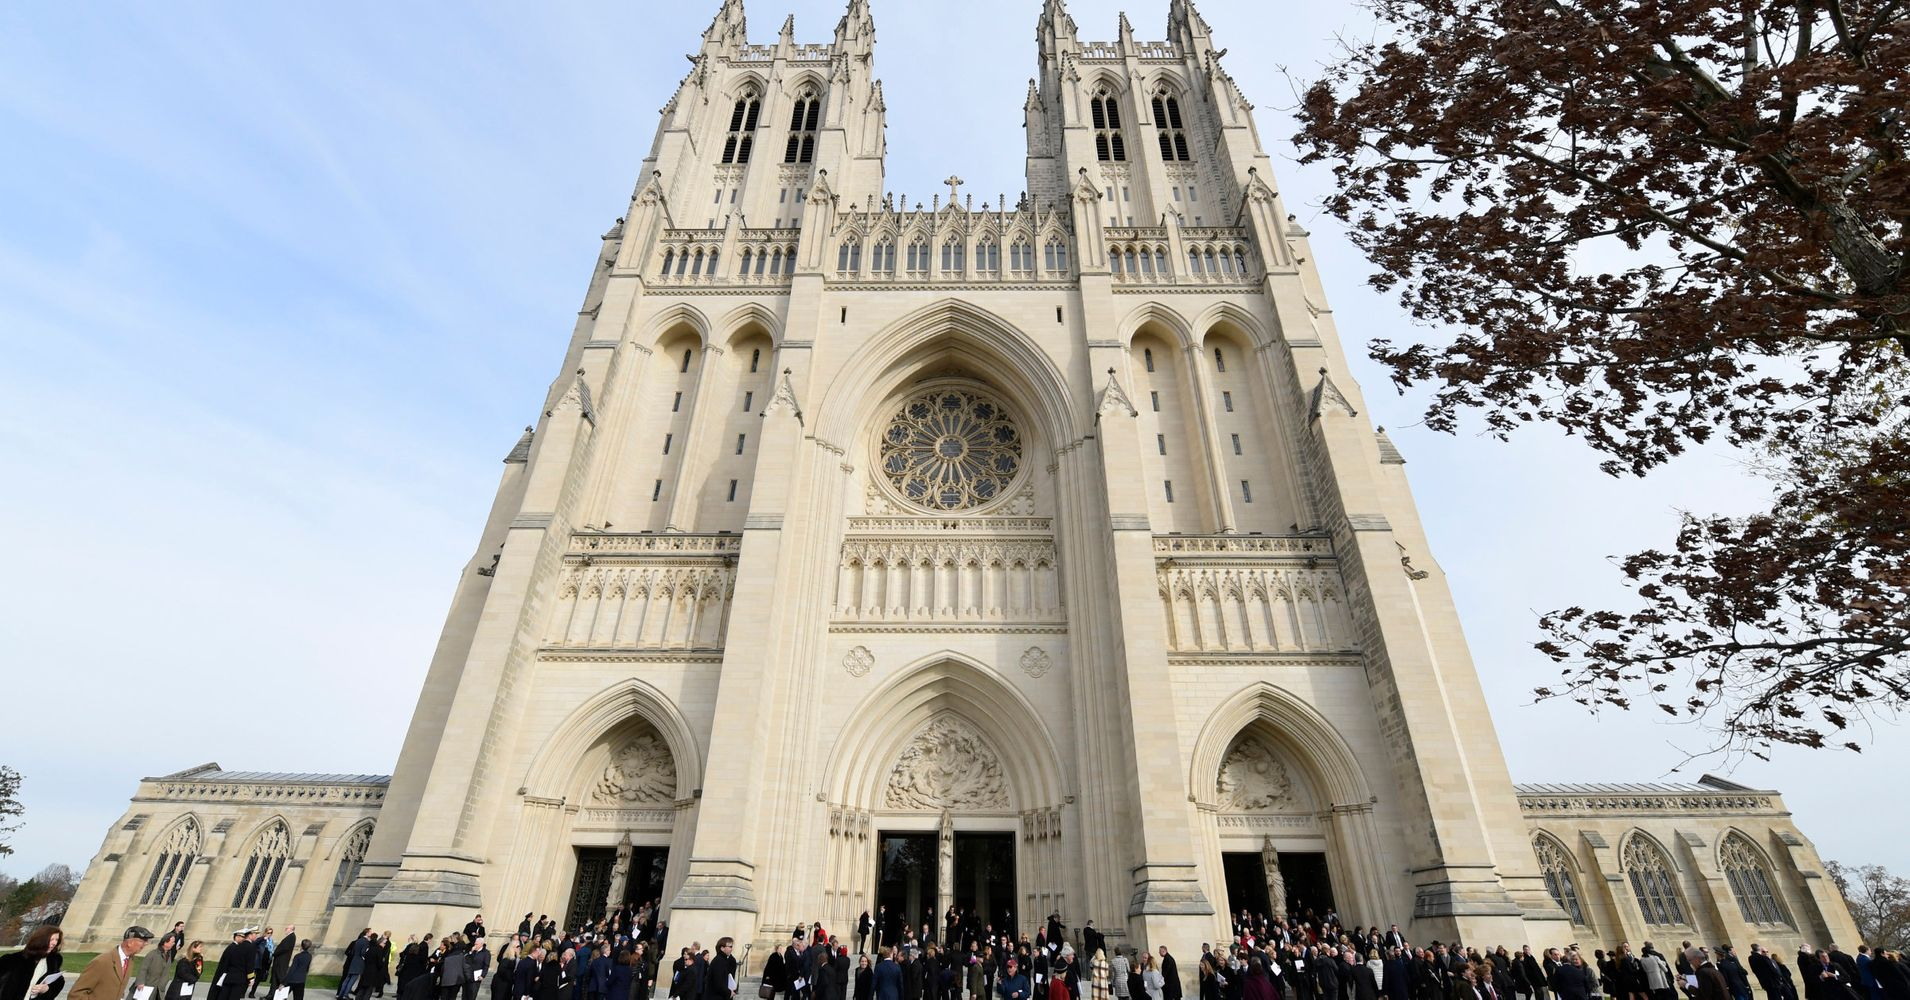 Washington National Cathedral: John McCain's Funeral Did Not Require Trump's OK